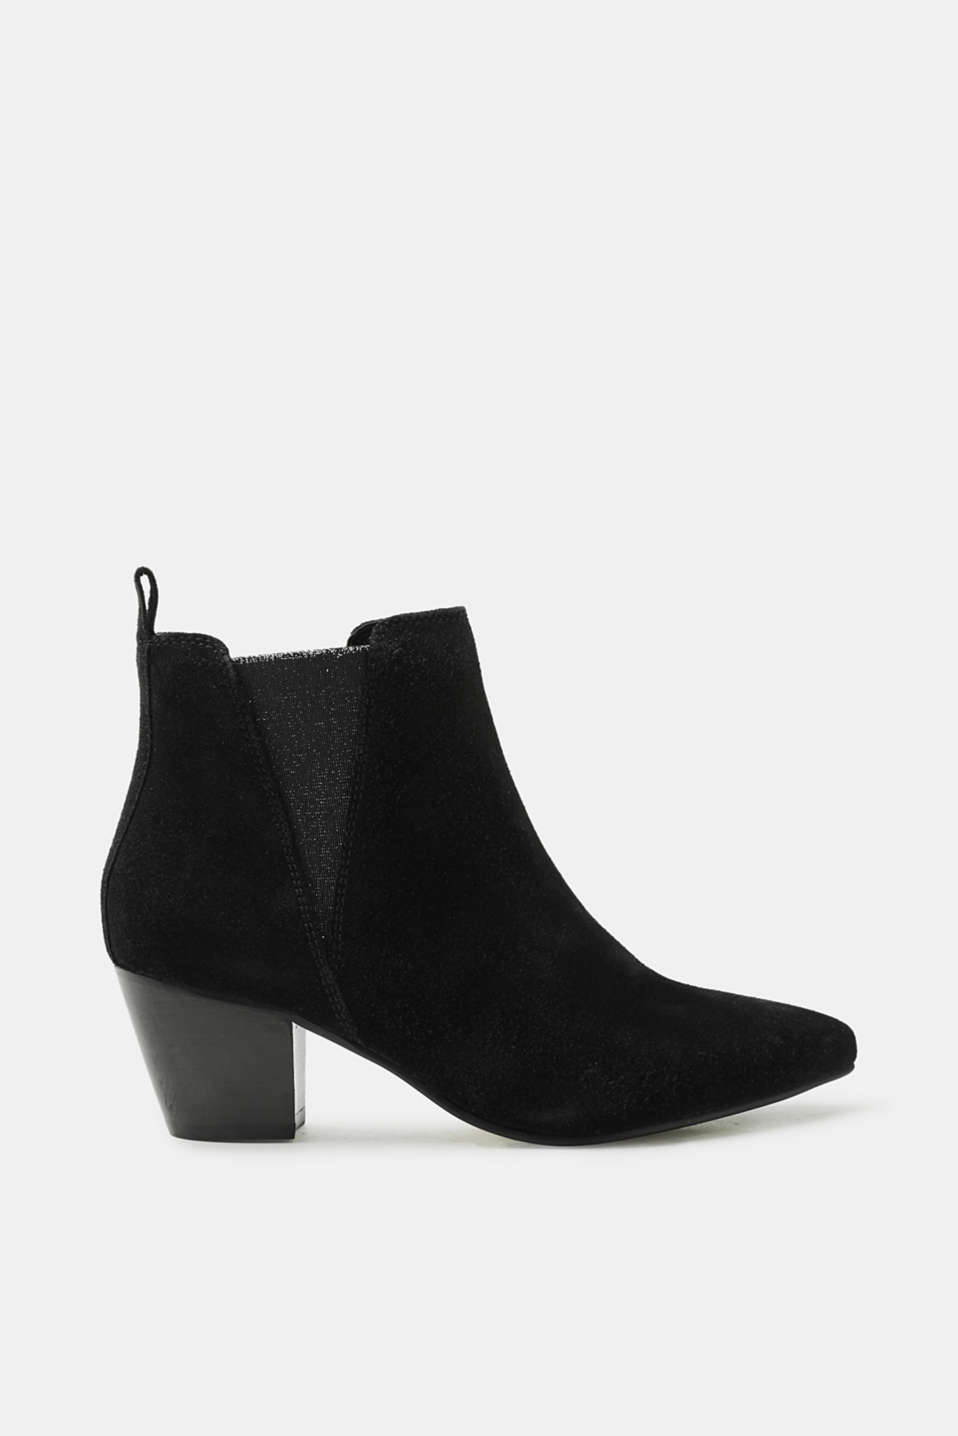 Esprit - Ankle boots with shimmery elasticated inserts